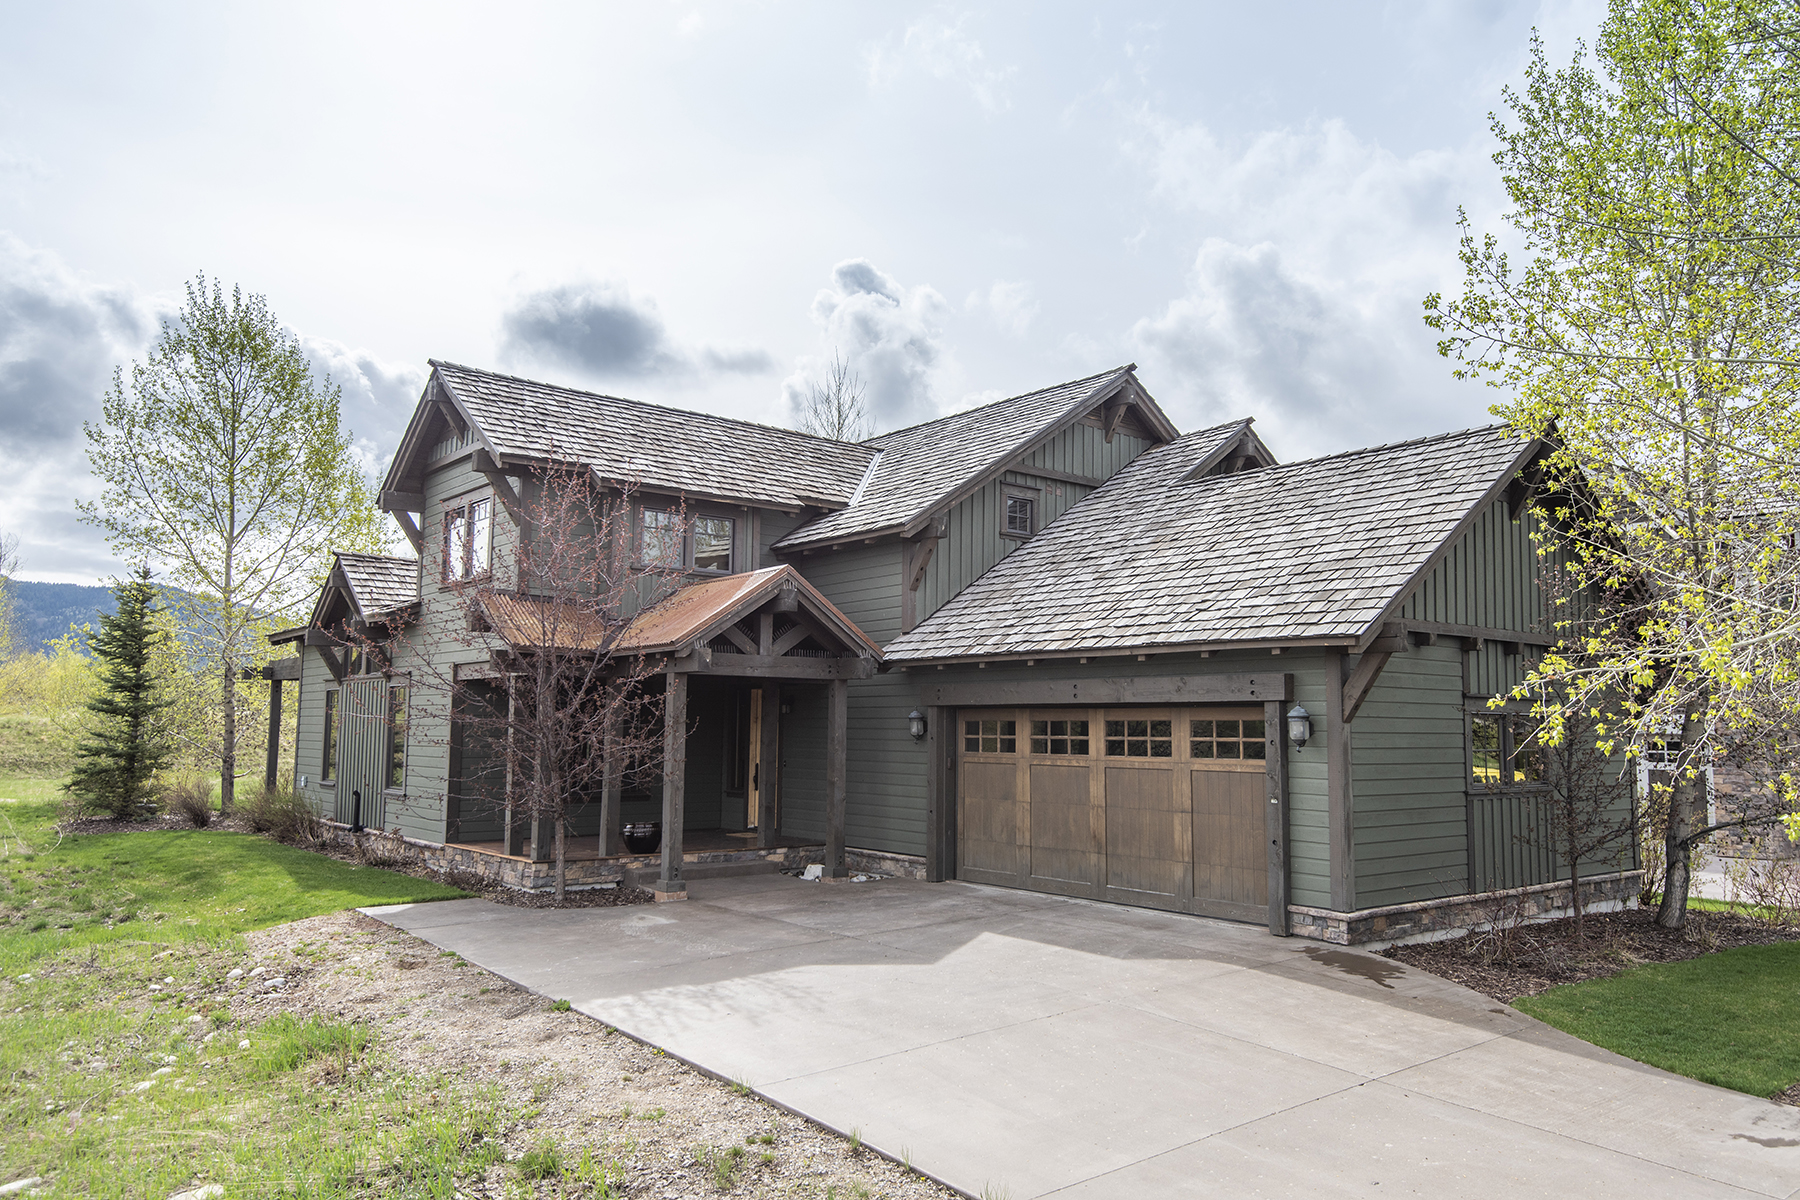 Single Family Home for Active at Well-Appointed Living in Teton Springs 45 Scott Dr Victor, Idaho 83455 United States